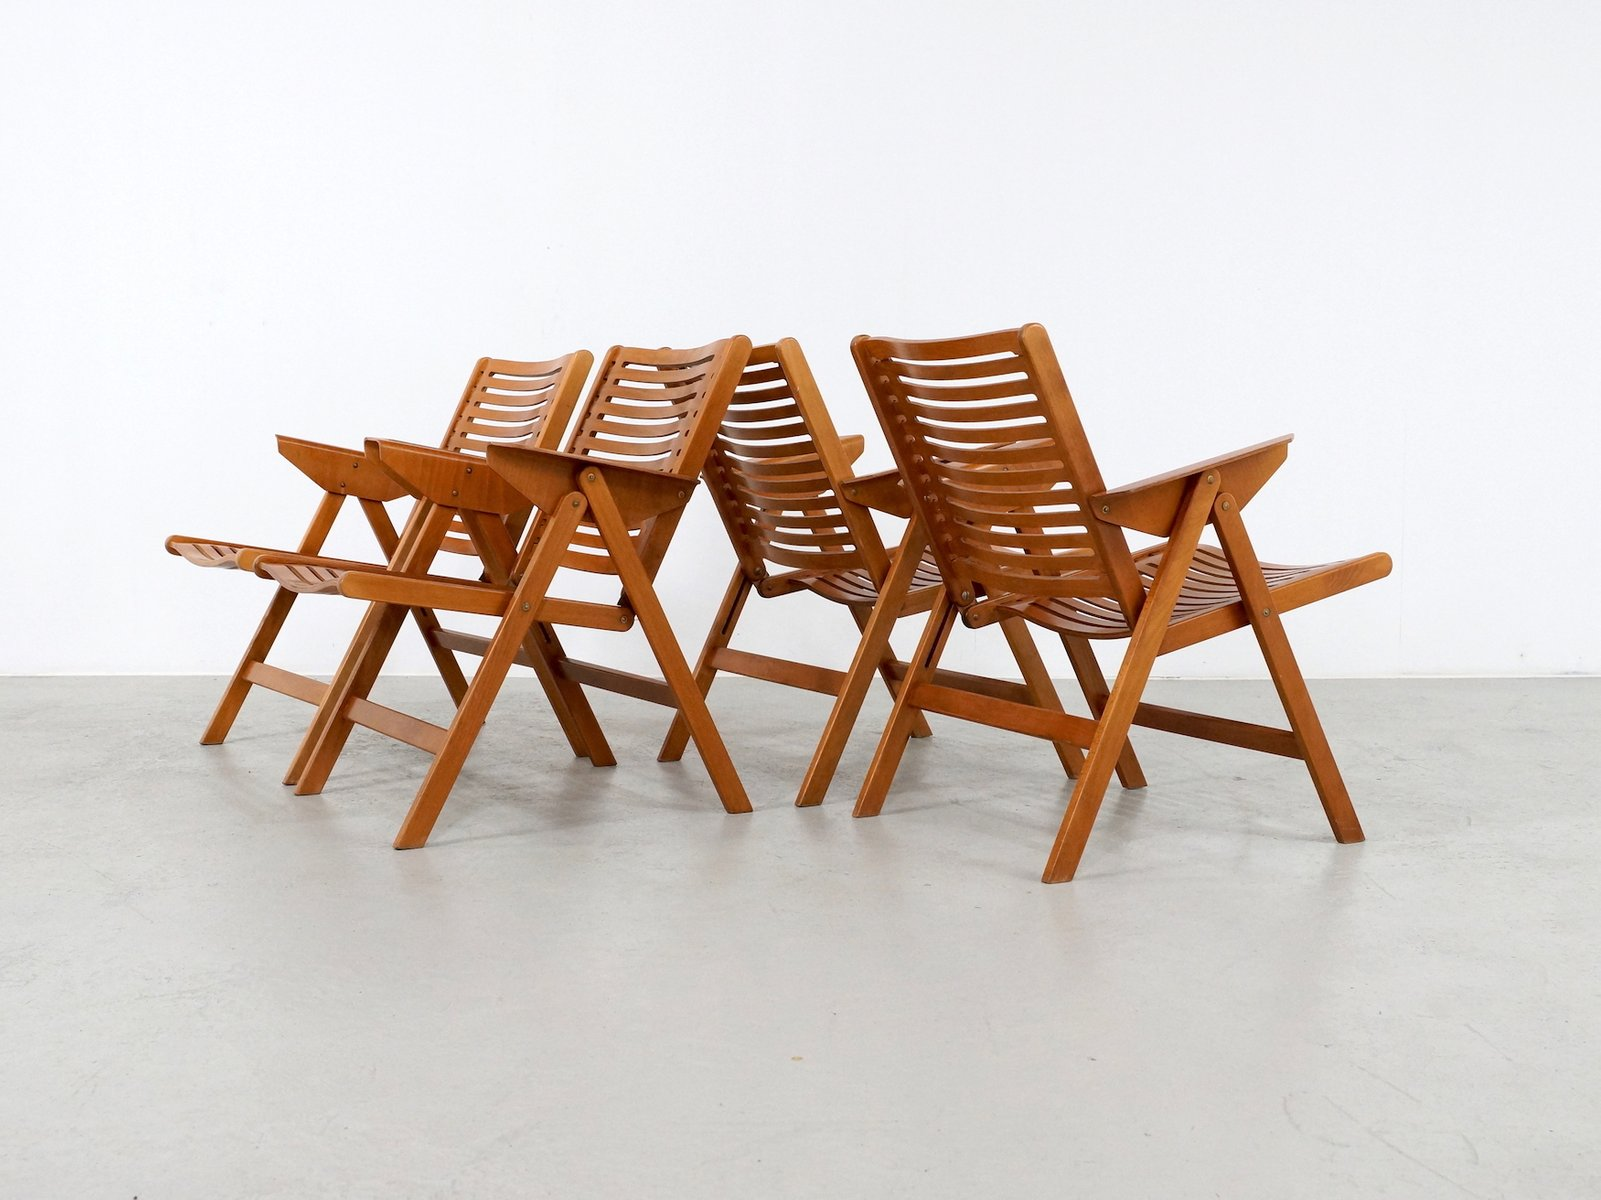 Vintage Rex Folding Chairs by Niko Kralj for Stol Set of 4 for